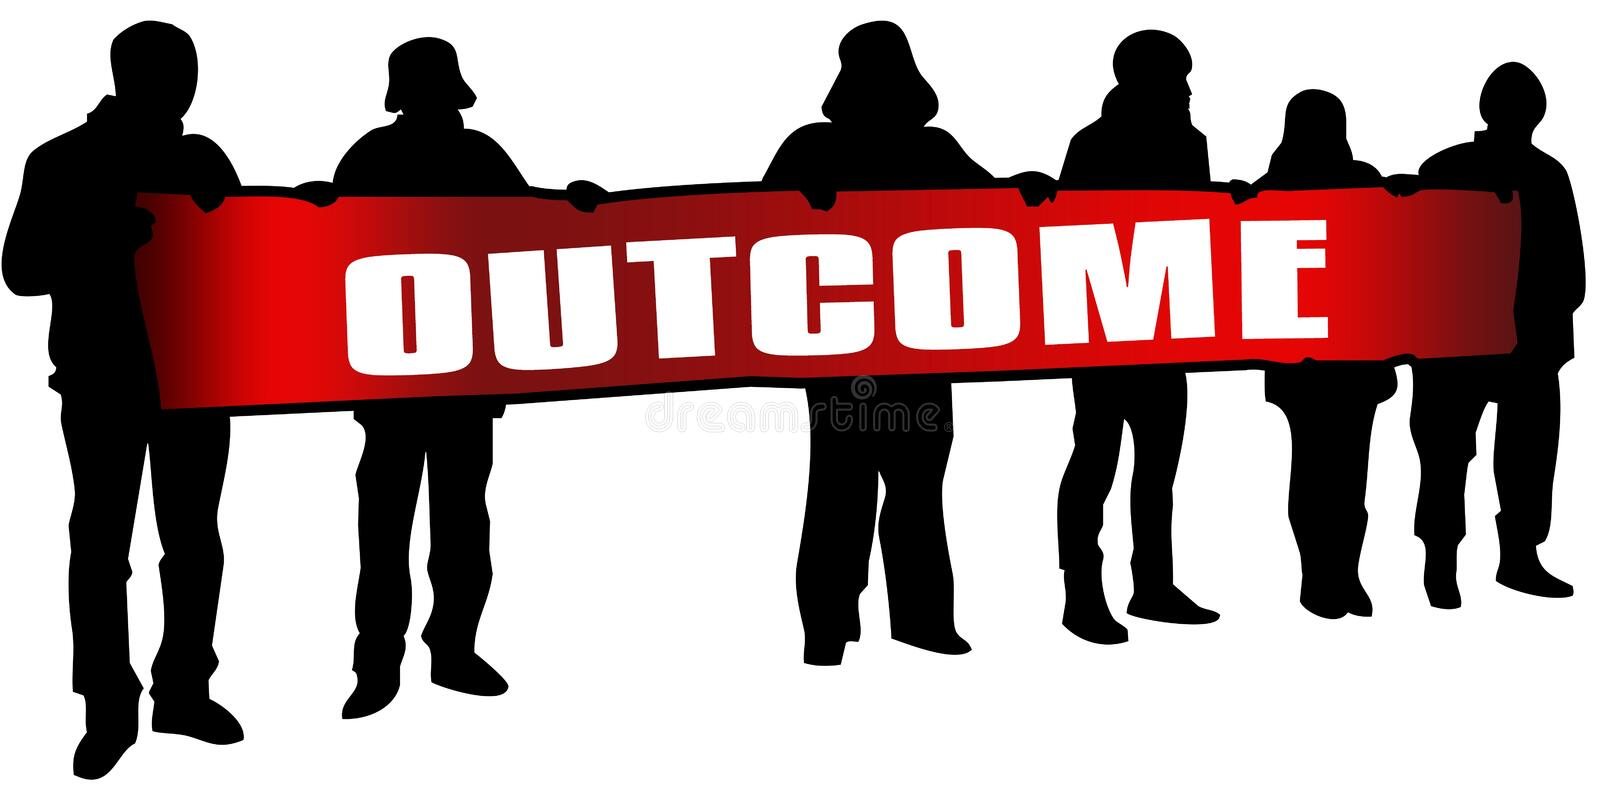 OUTCOME on red banner held by people silhouettes at rally. Illustration vector illustration